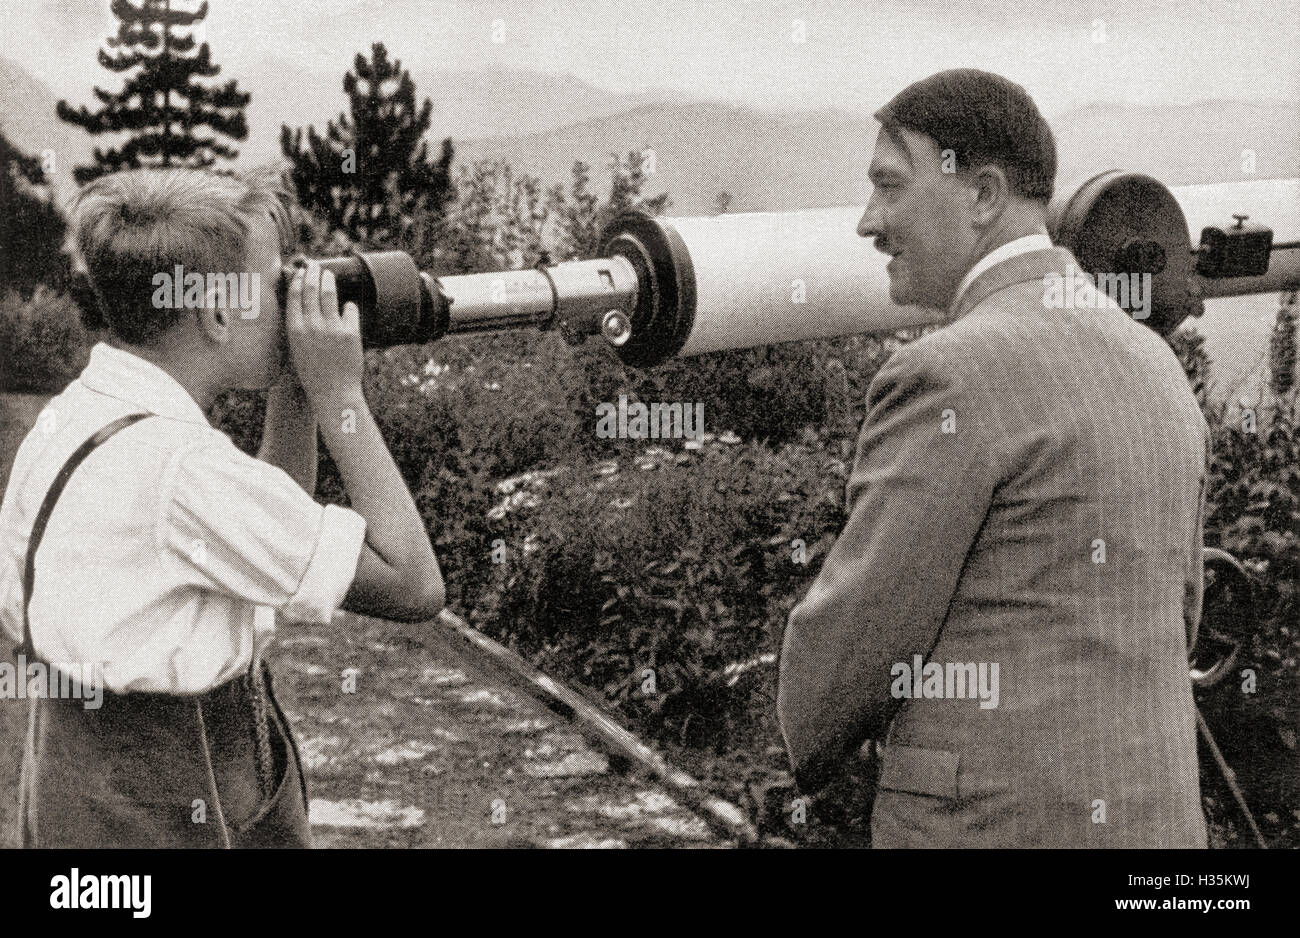 Adolf Hitler at his residence in Obersalzberg, Bavaria, Germany in 1936, watching a boy observing the Unterberg - Stock Image